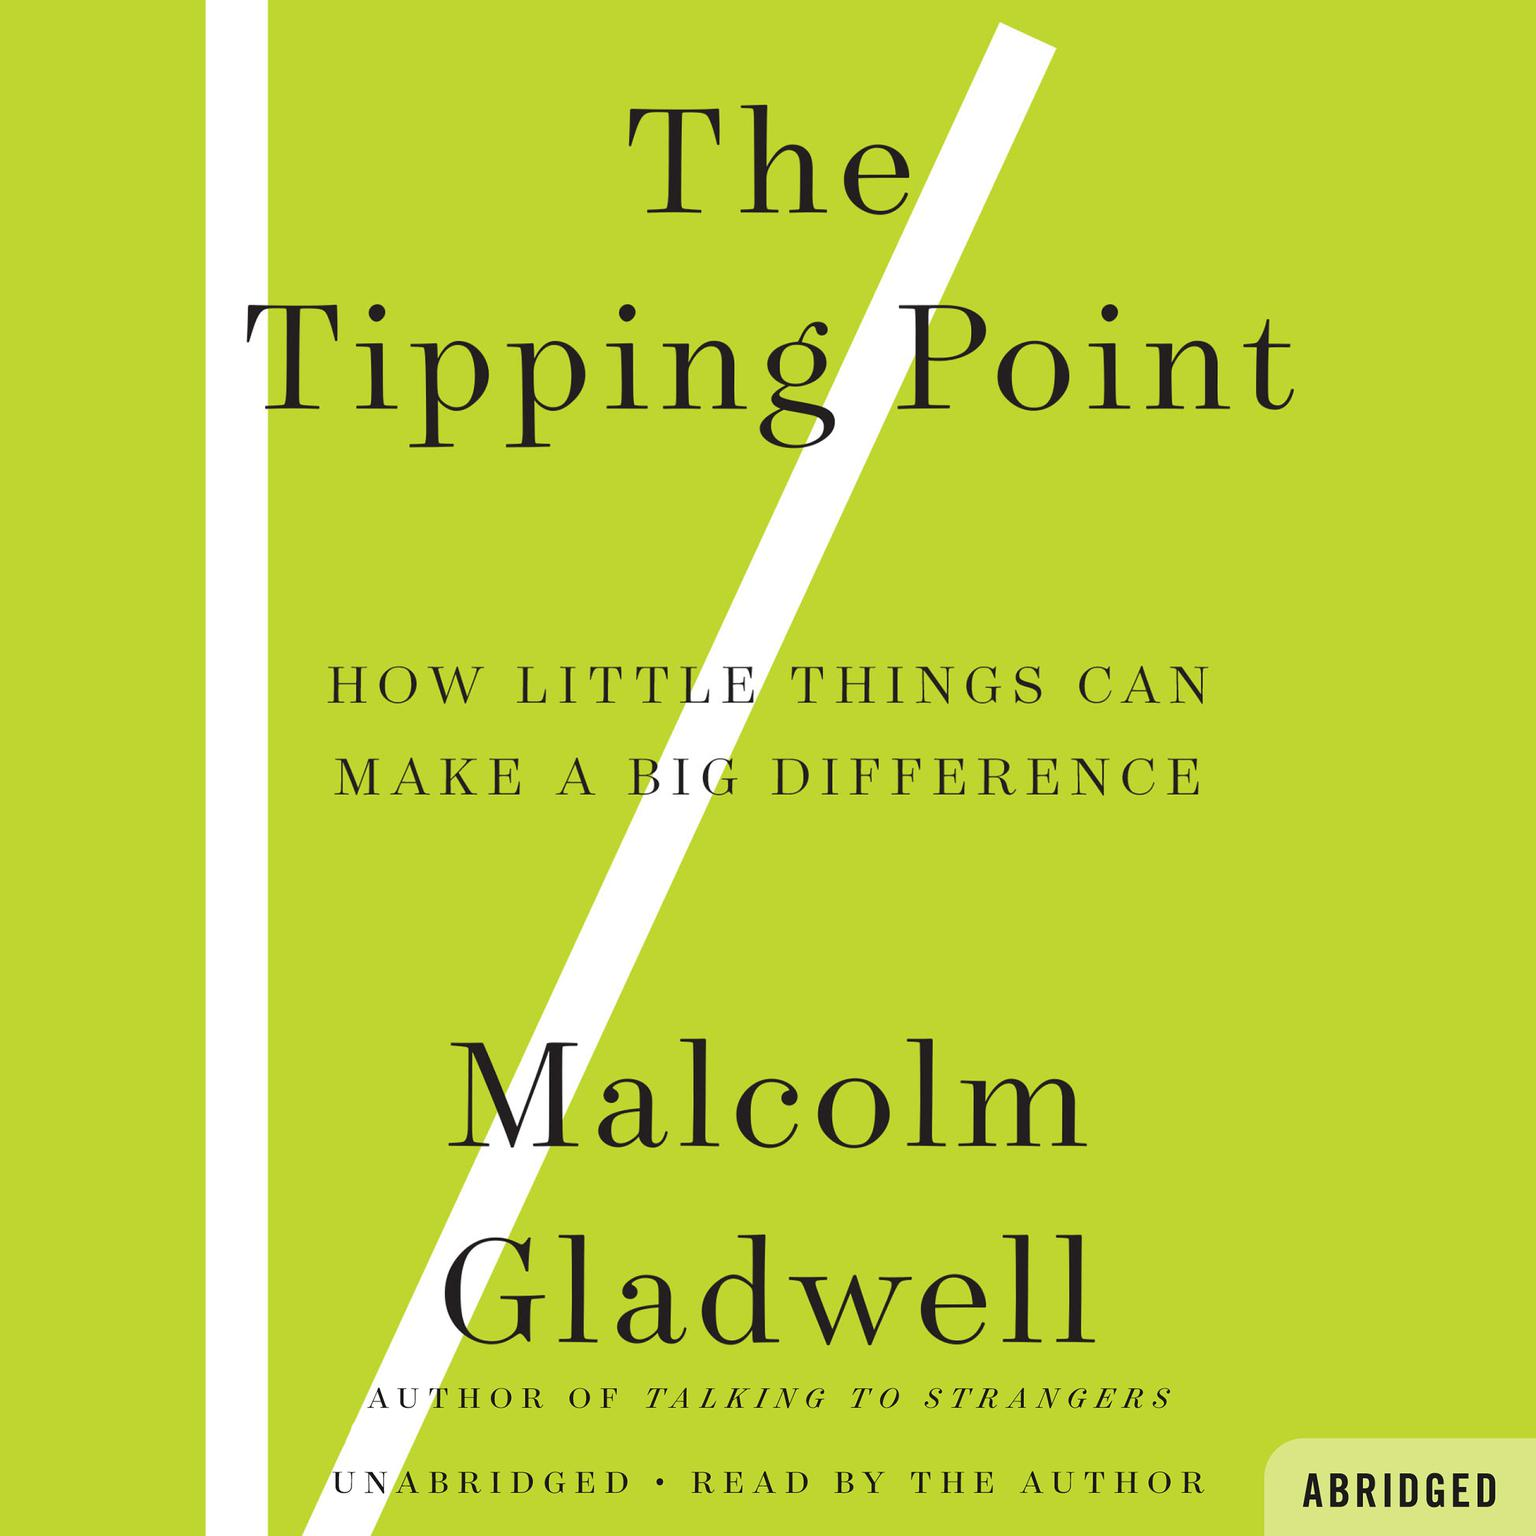 The Tipping Point (Abridged): How Little Things Can Make a Big Difference Audiobook, by Malcolm Gladwell